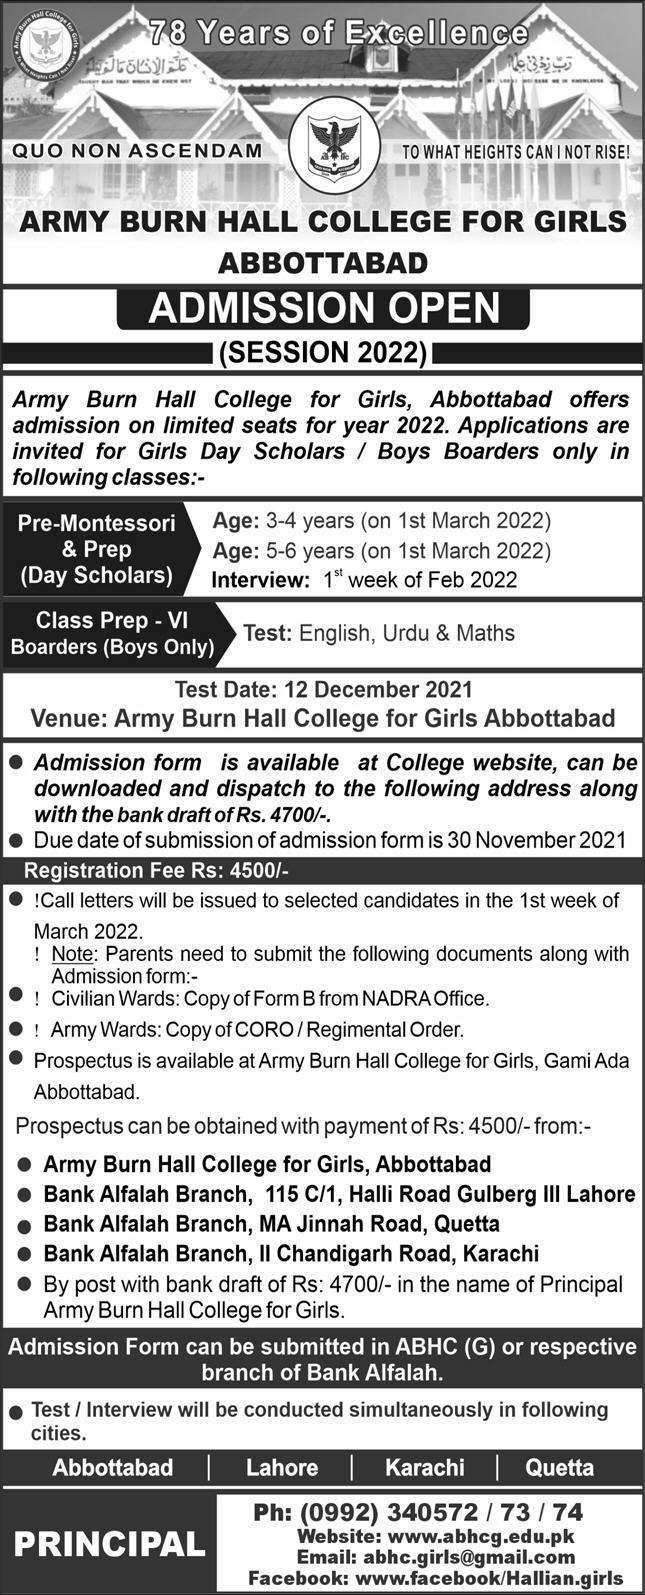 Army Burn Hall College for Girls Abbottabad Admission 2022